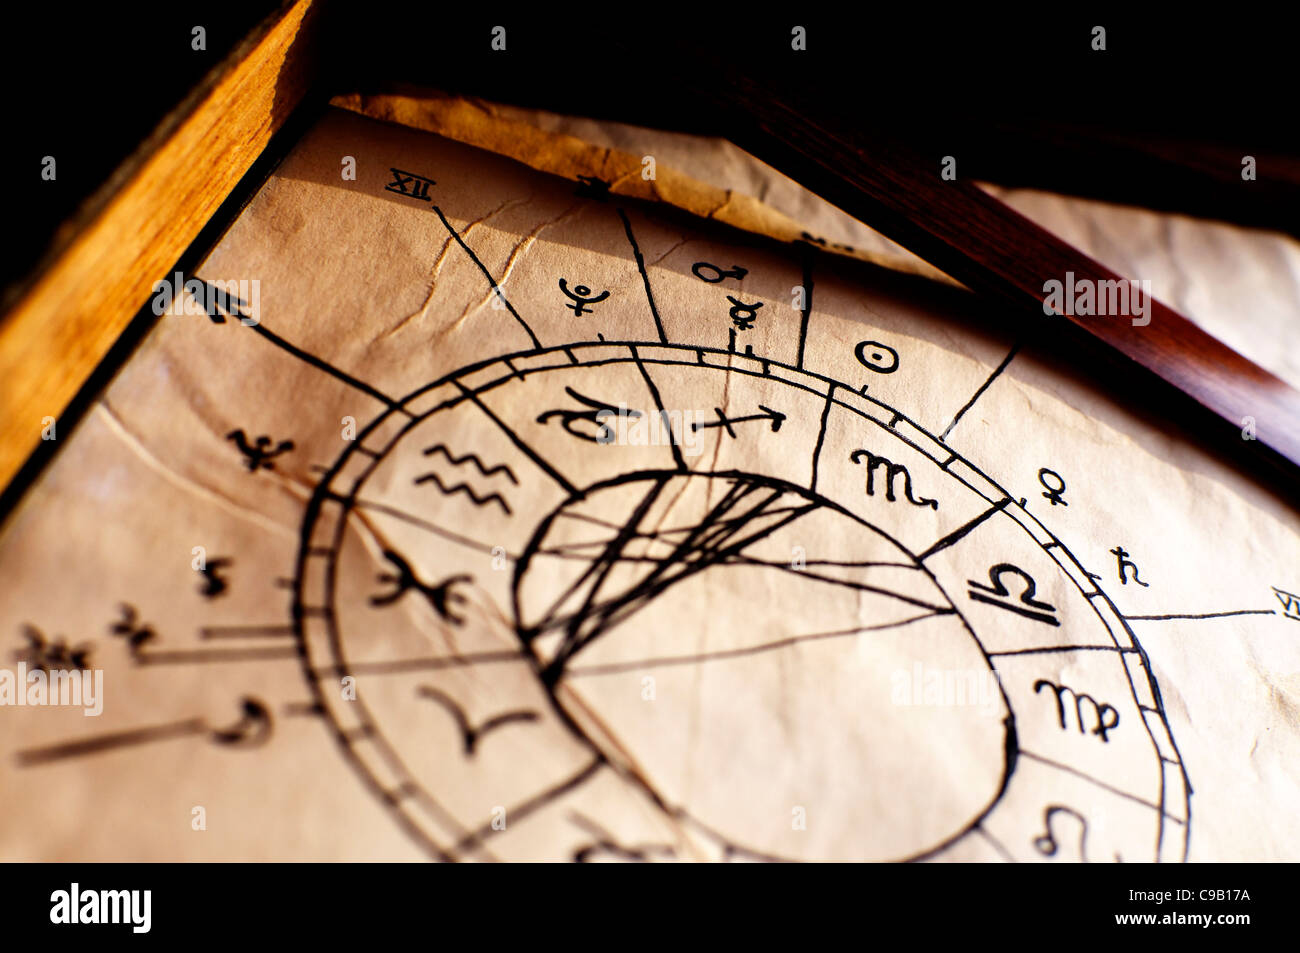 Traditional horoscope, used to predict the future - Stock Image